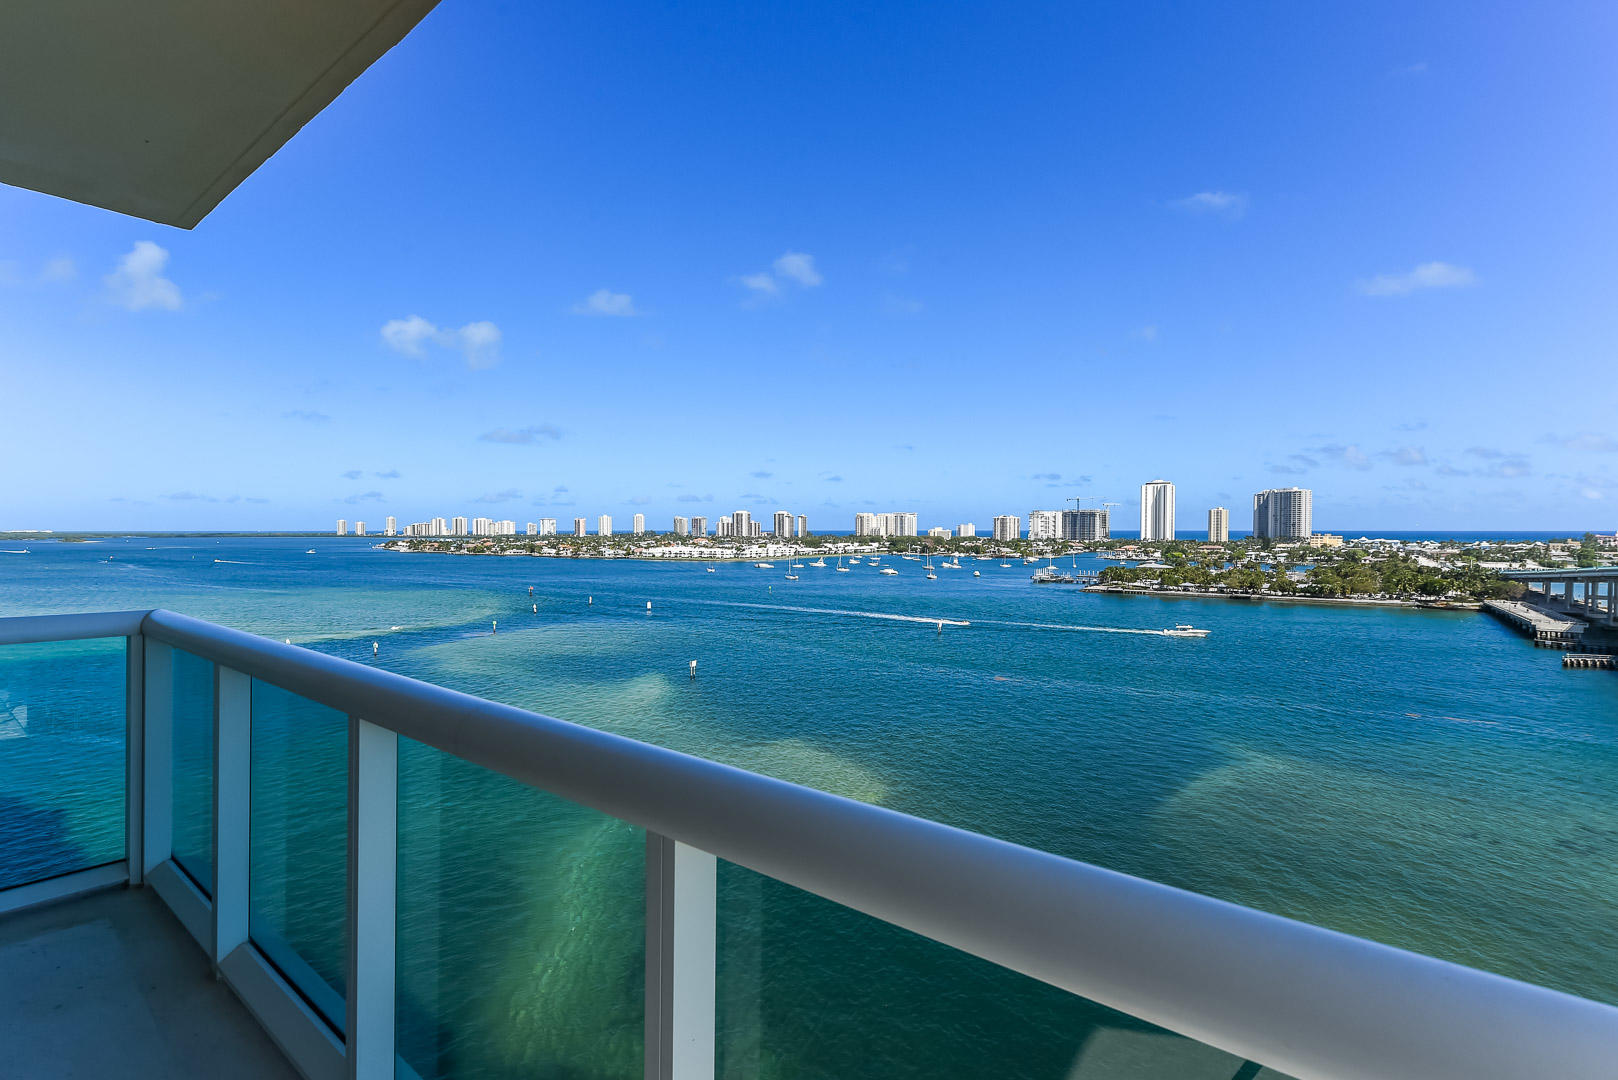 VIEWS EAST TO SINGER ISLAND SKYLINE